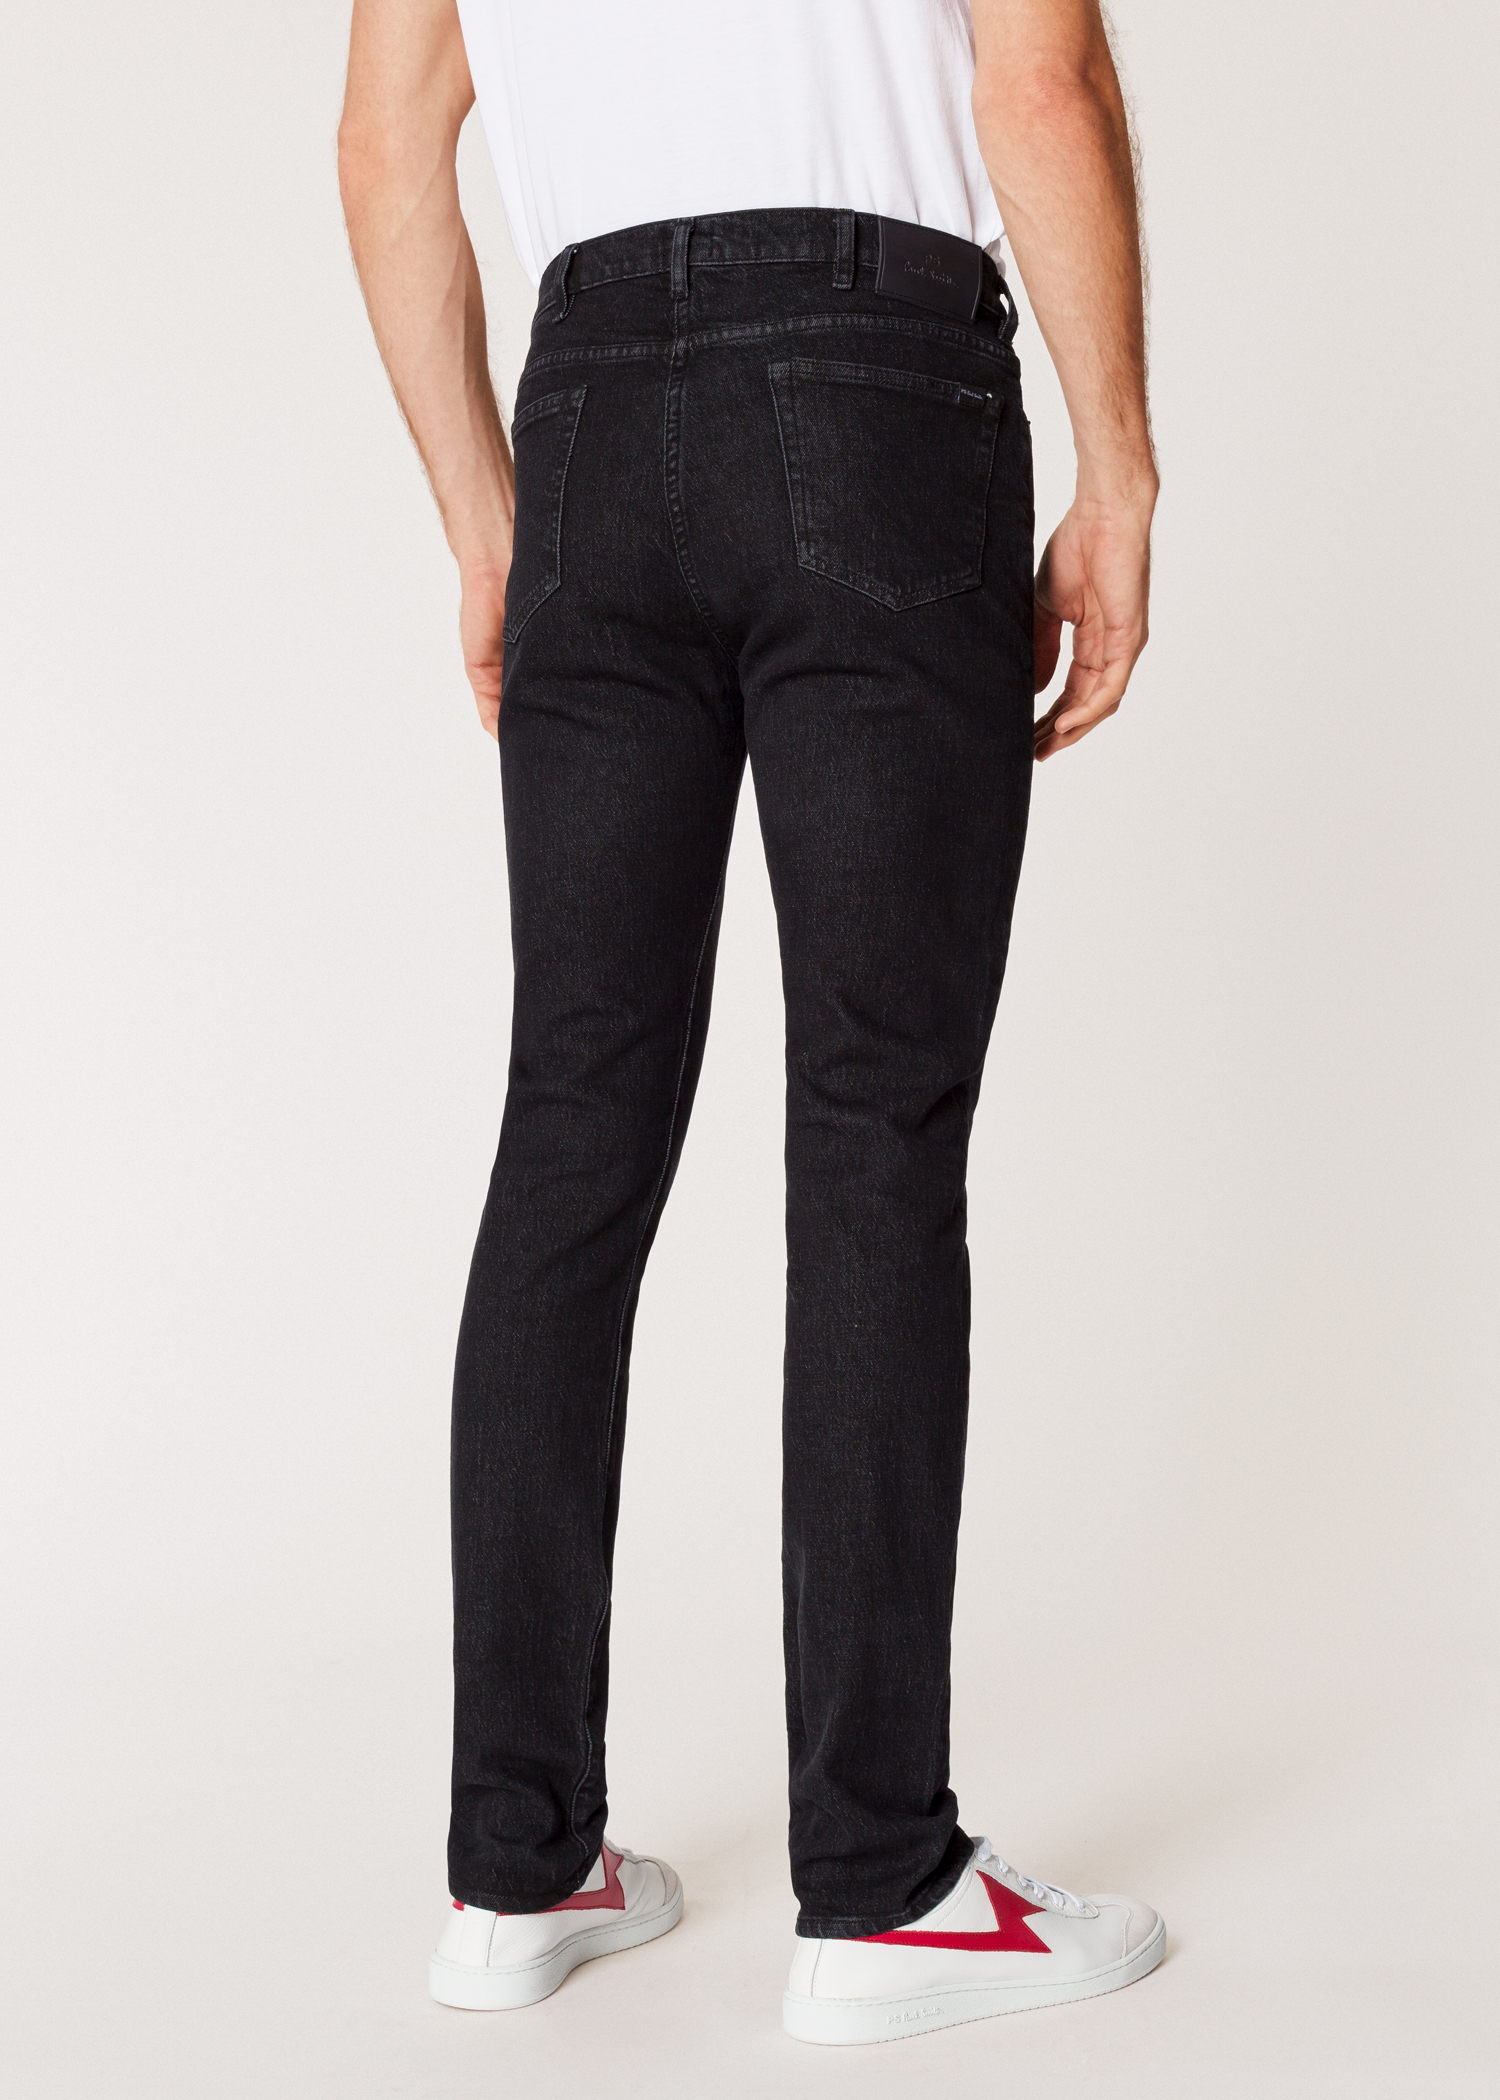 274c089c Model back close up - Men's Slim-Fit 'Washed Stretch Black' Denim Jeans